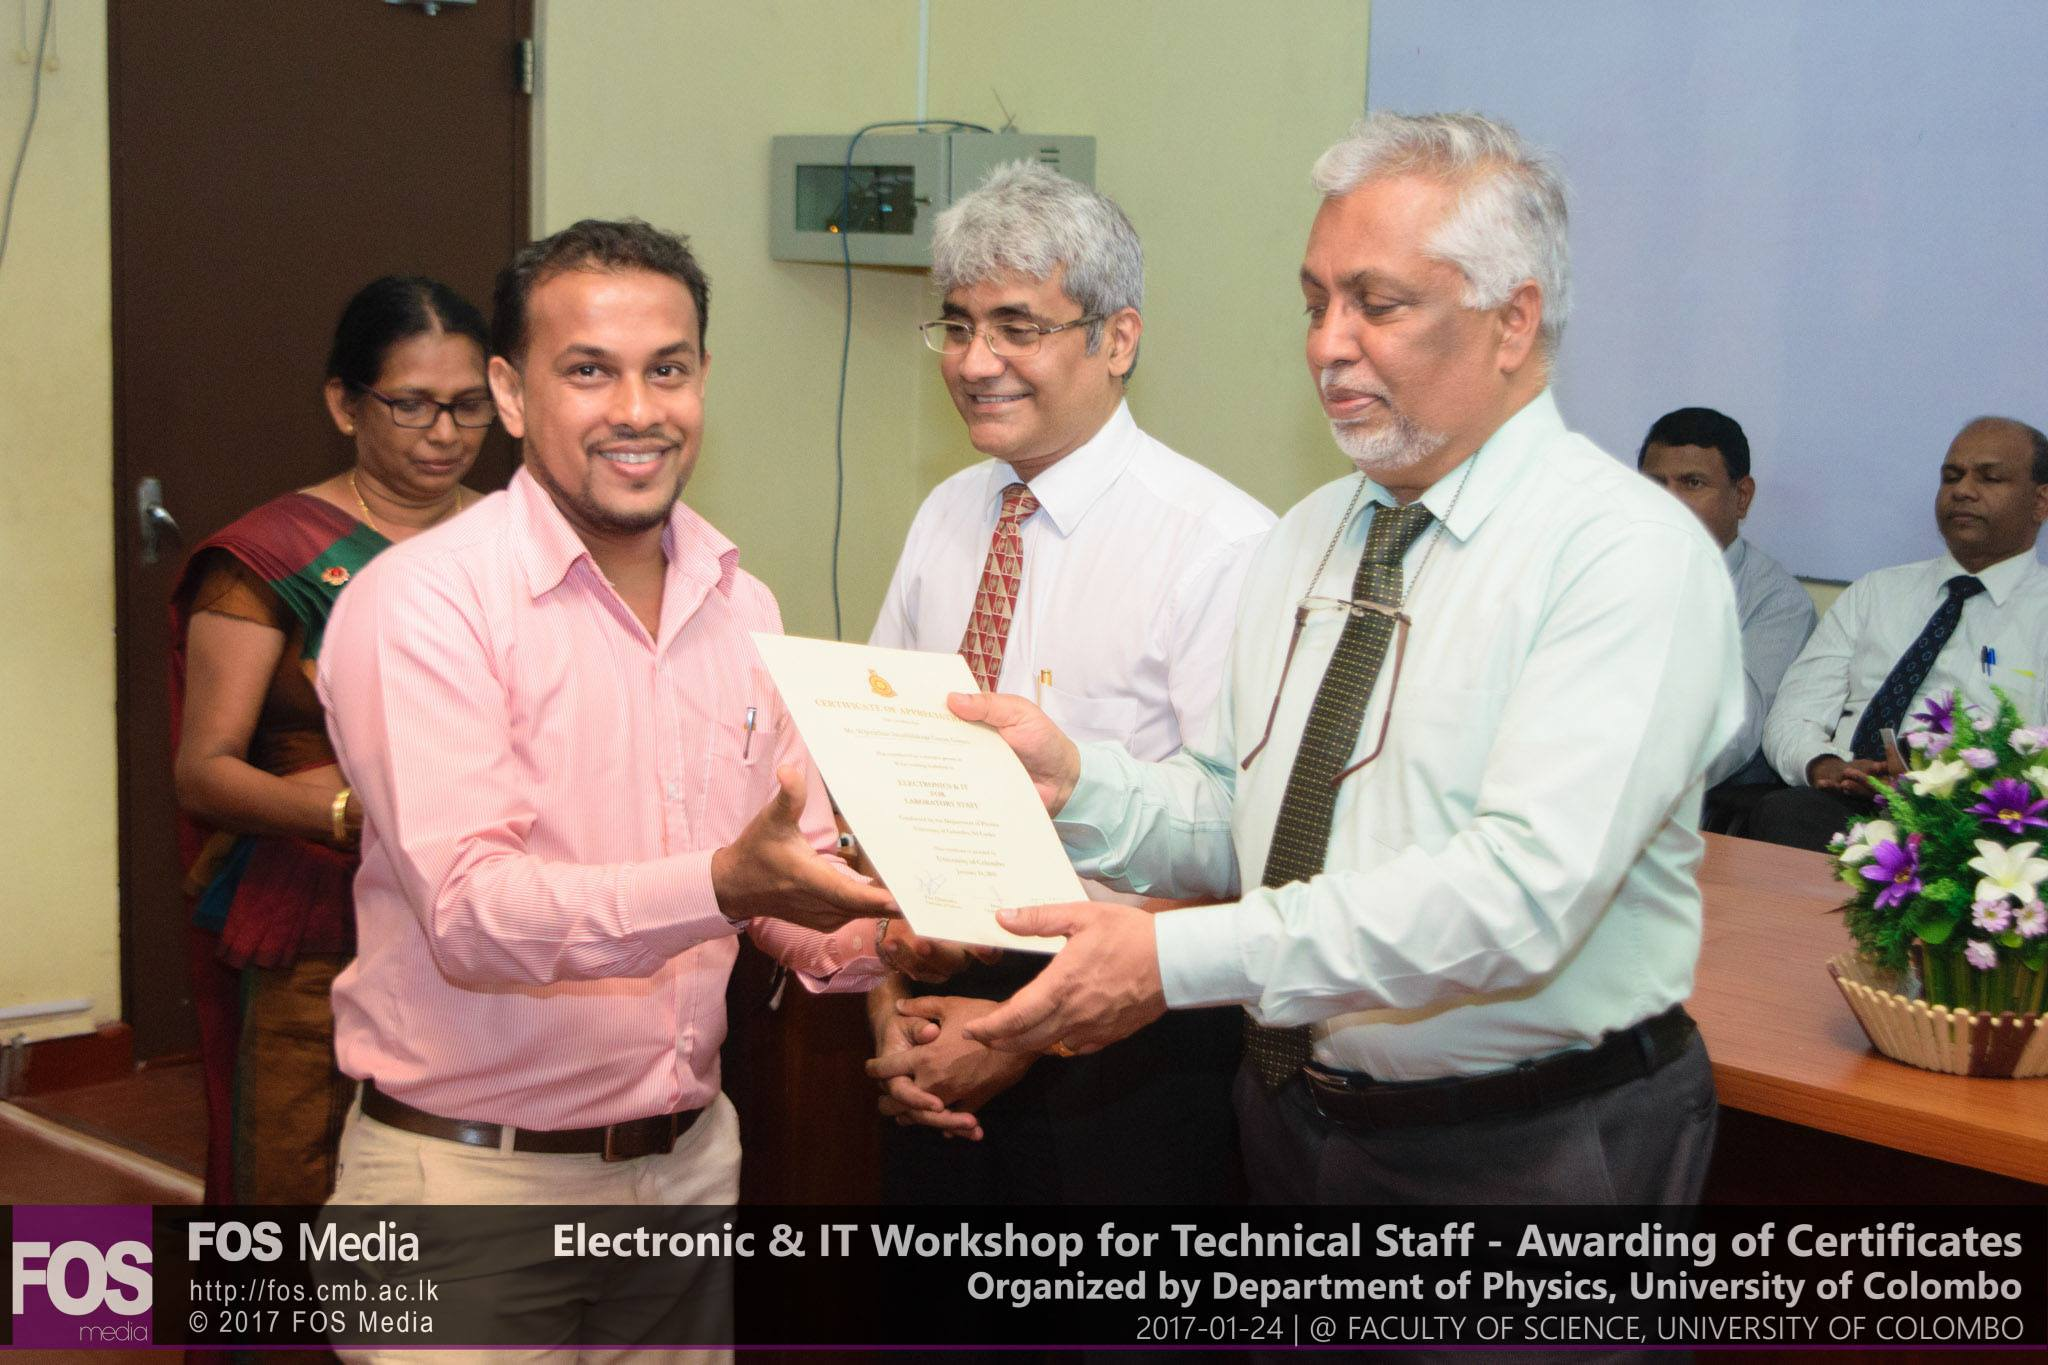 Electronic & IT Workshop – Awarding of Certificates